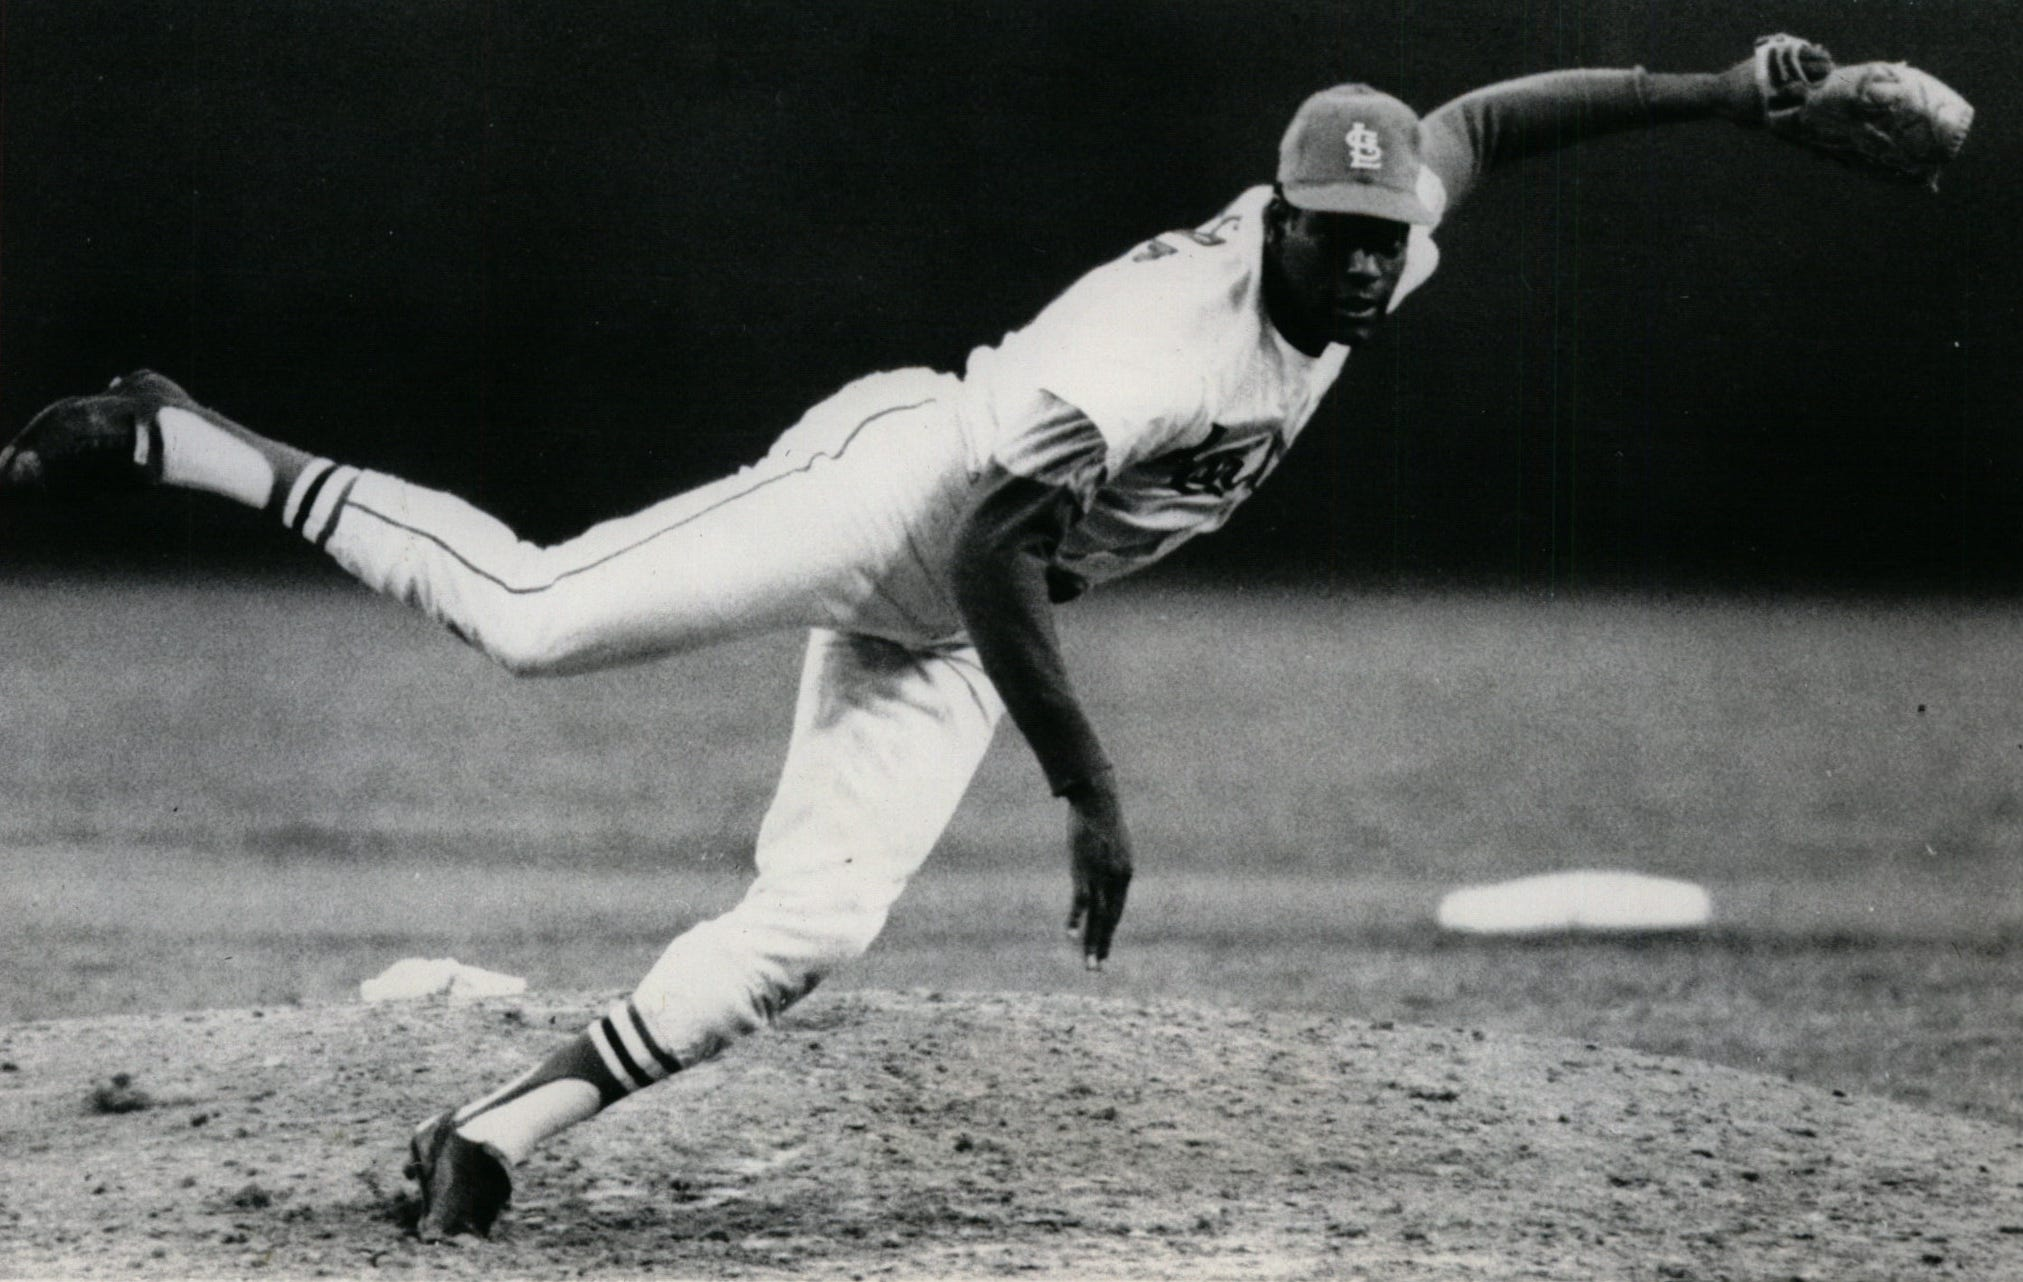 St. Louis Cardinals ace Bob Gibson hurls another pitch during Game 1 of the 1968 World Series against the Detroit Tigers. Gibson struck out 17 batters in the game, which is still a World Series record.